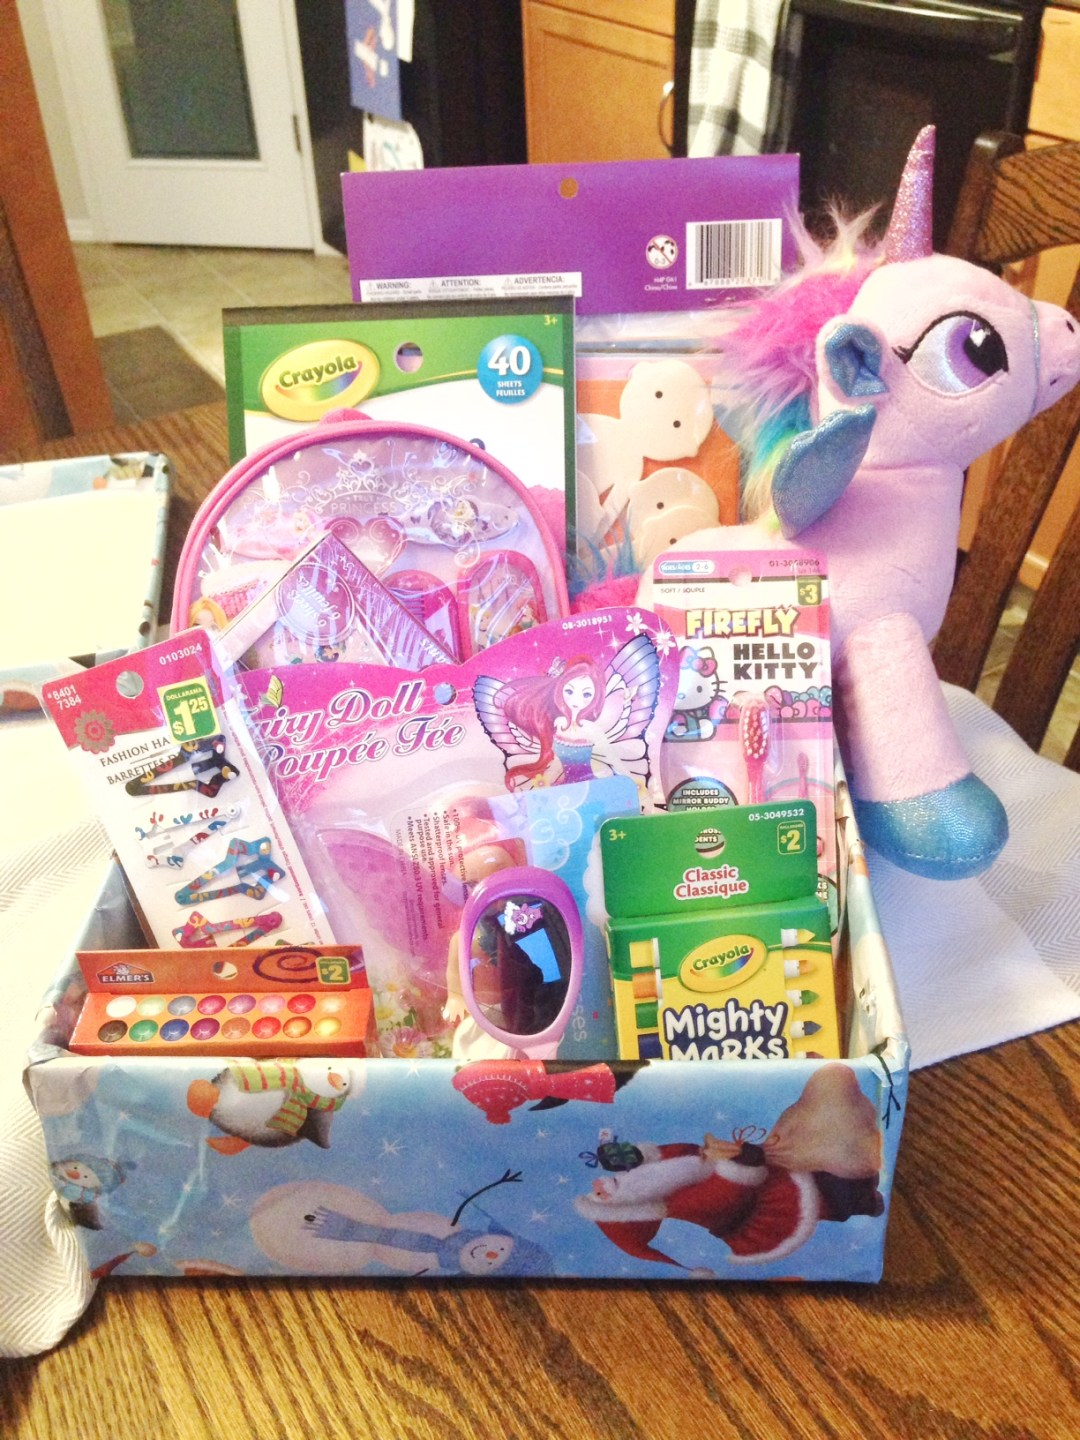 A box of goodies for a special little girl somewhere